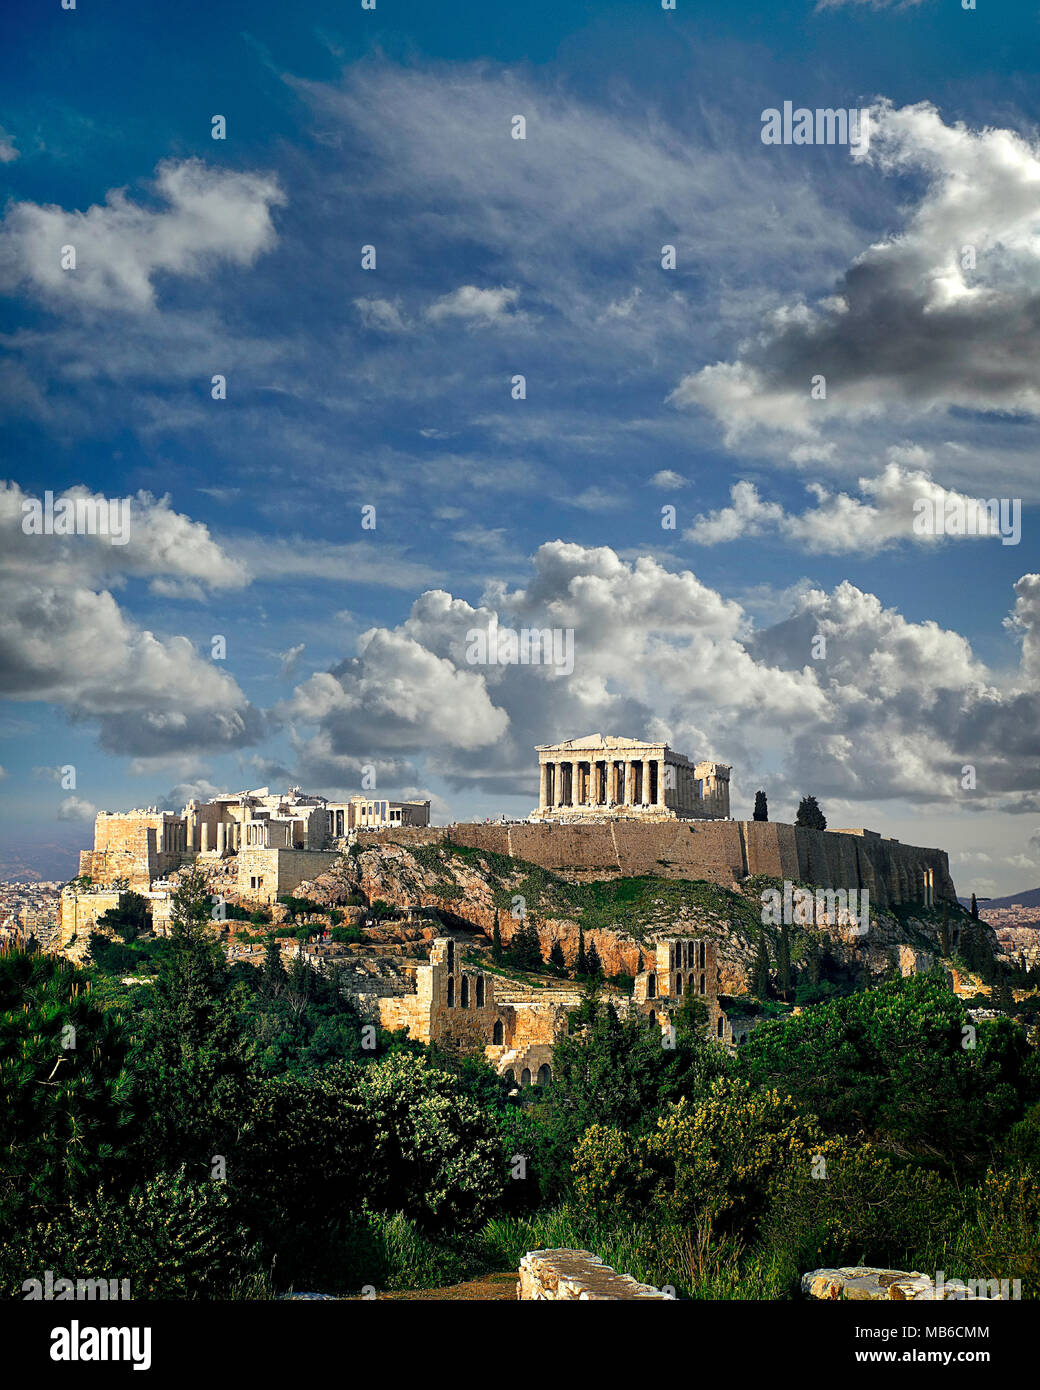 GR - ATHENS: The Acropolis - Stock Image